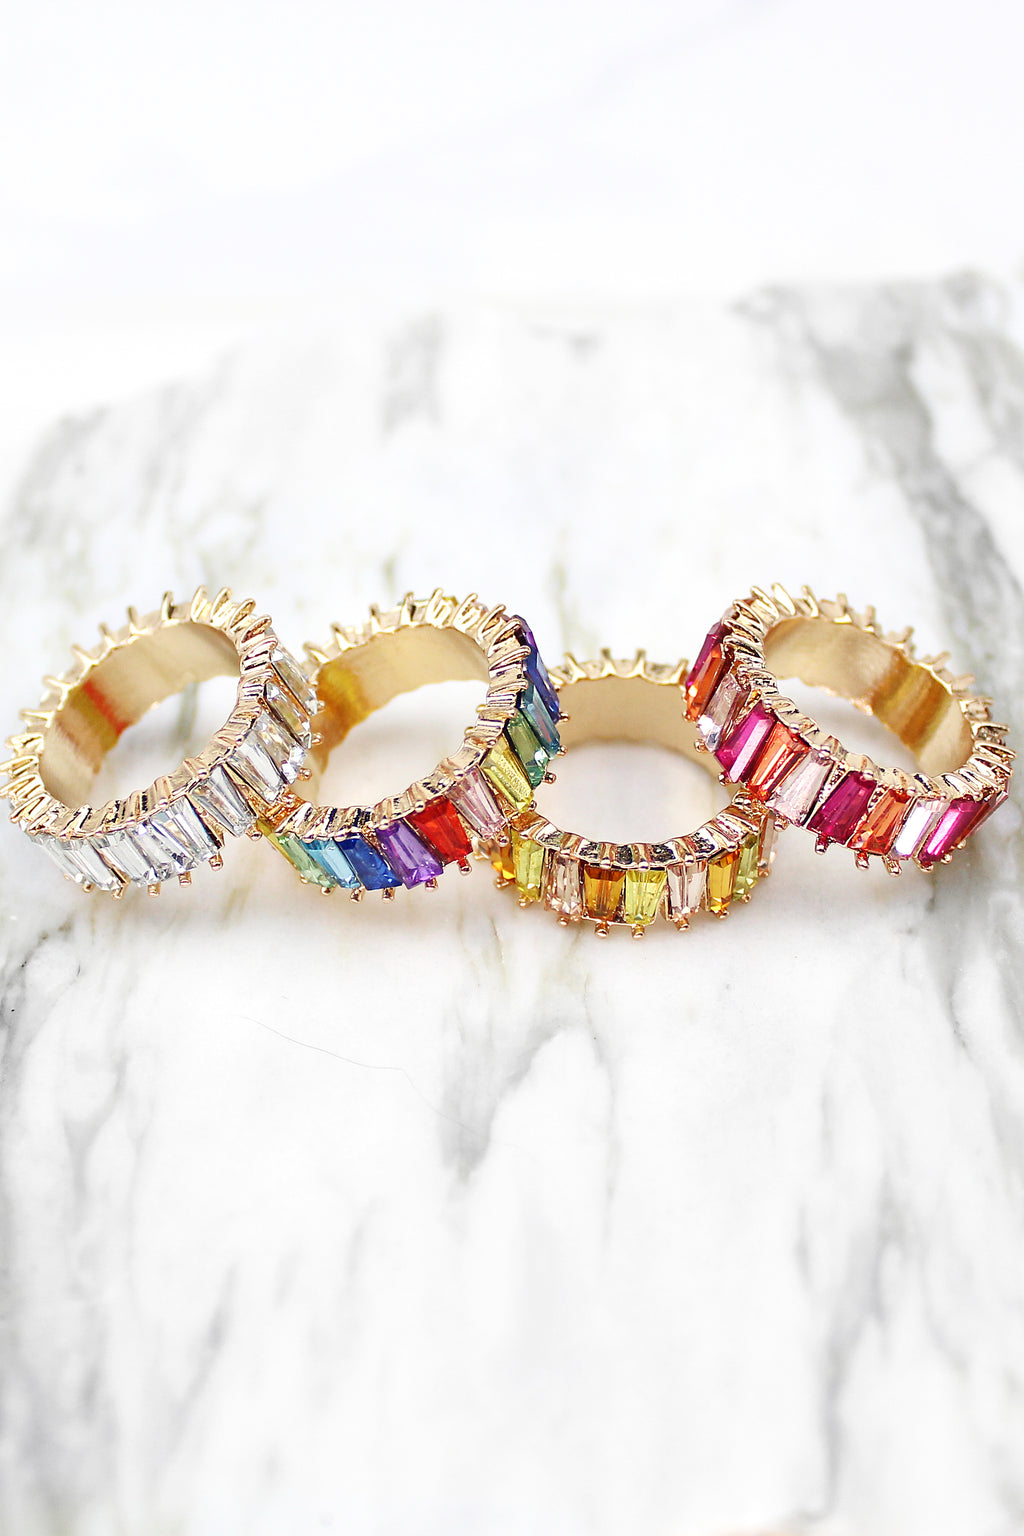 Thick Freeform Rainbow Baguette Ring - Clear Stones, Rainbow Ring, Baguette Ring, Multicolor Baguette Ring, Statement Ring, Gold Baguette Ring, Rainbow Baguette Ring, Eternity Baguette Ring - Kendry Collection Boutique